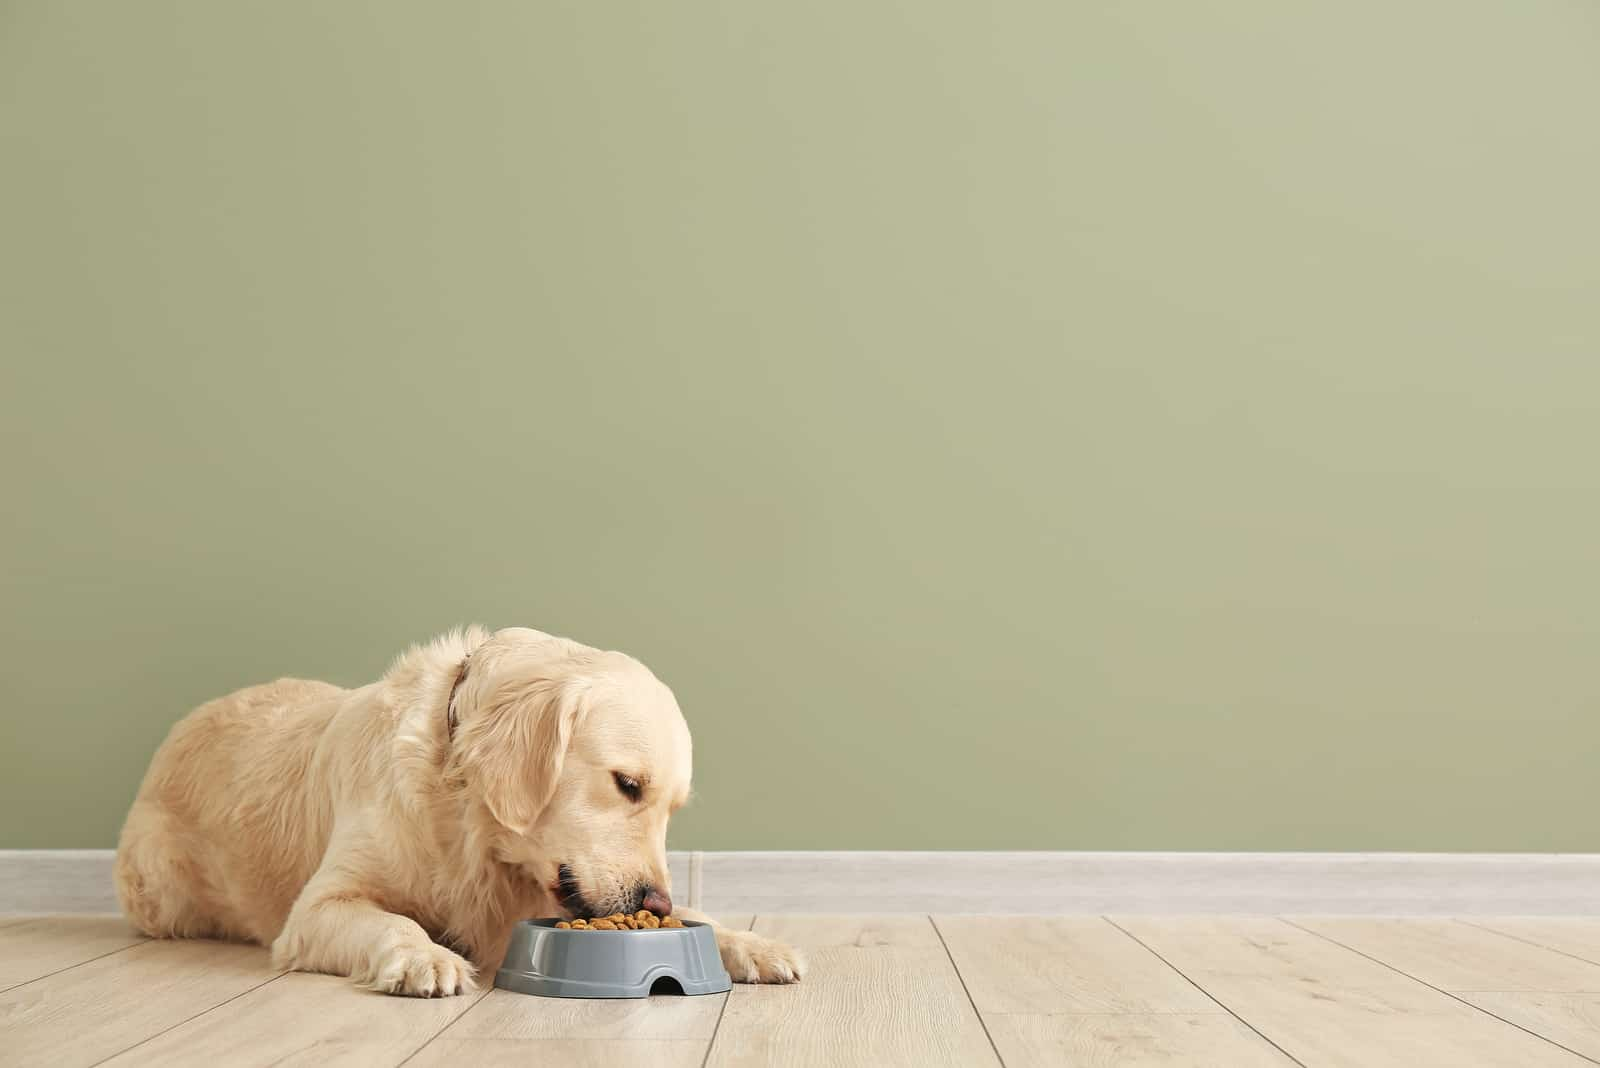 labrador dog eats from a bowl of crackers